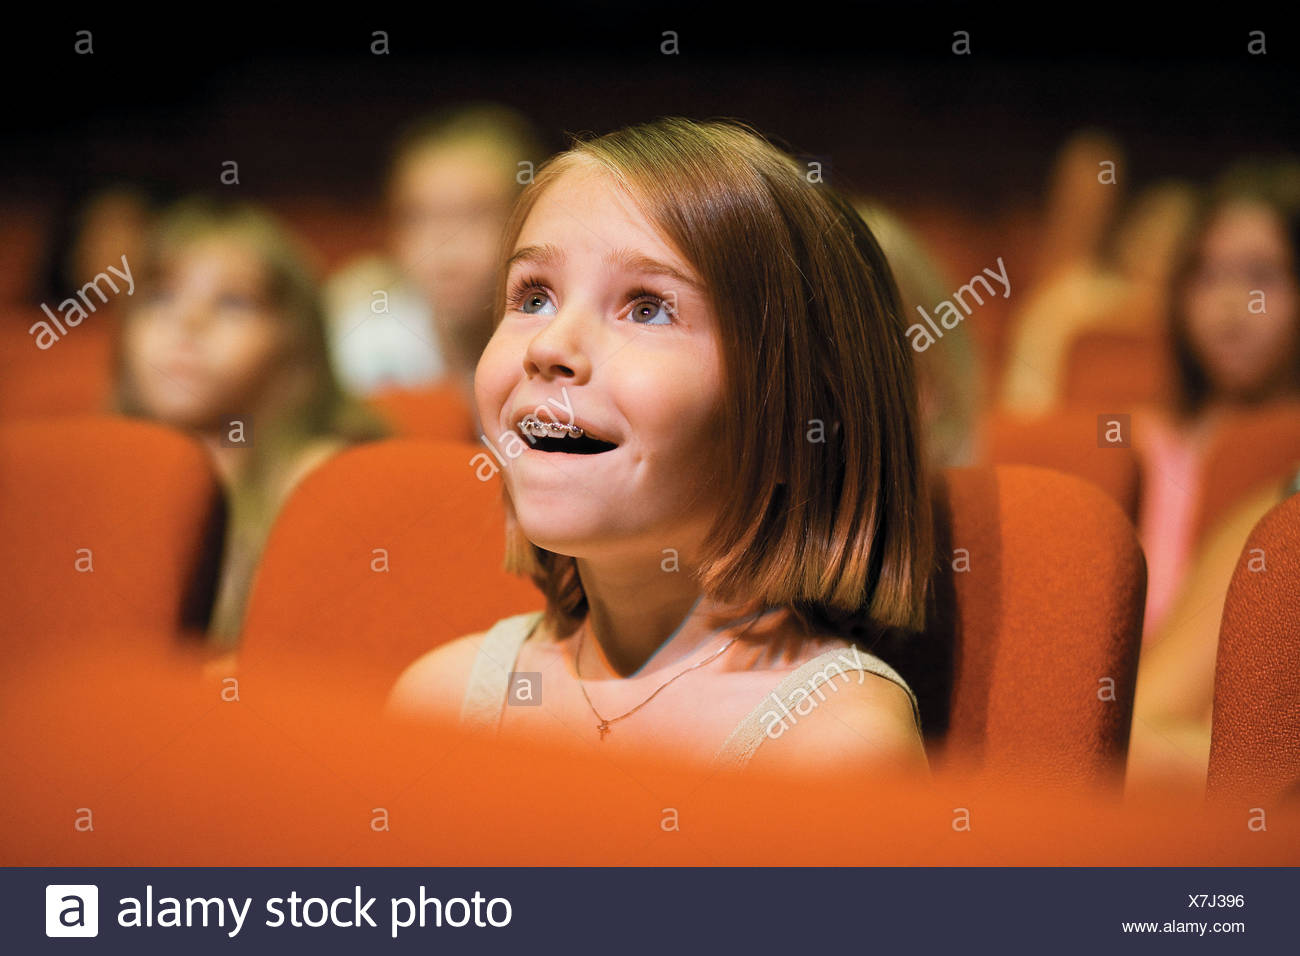 Girl sitting in theatre seat - Stock Image